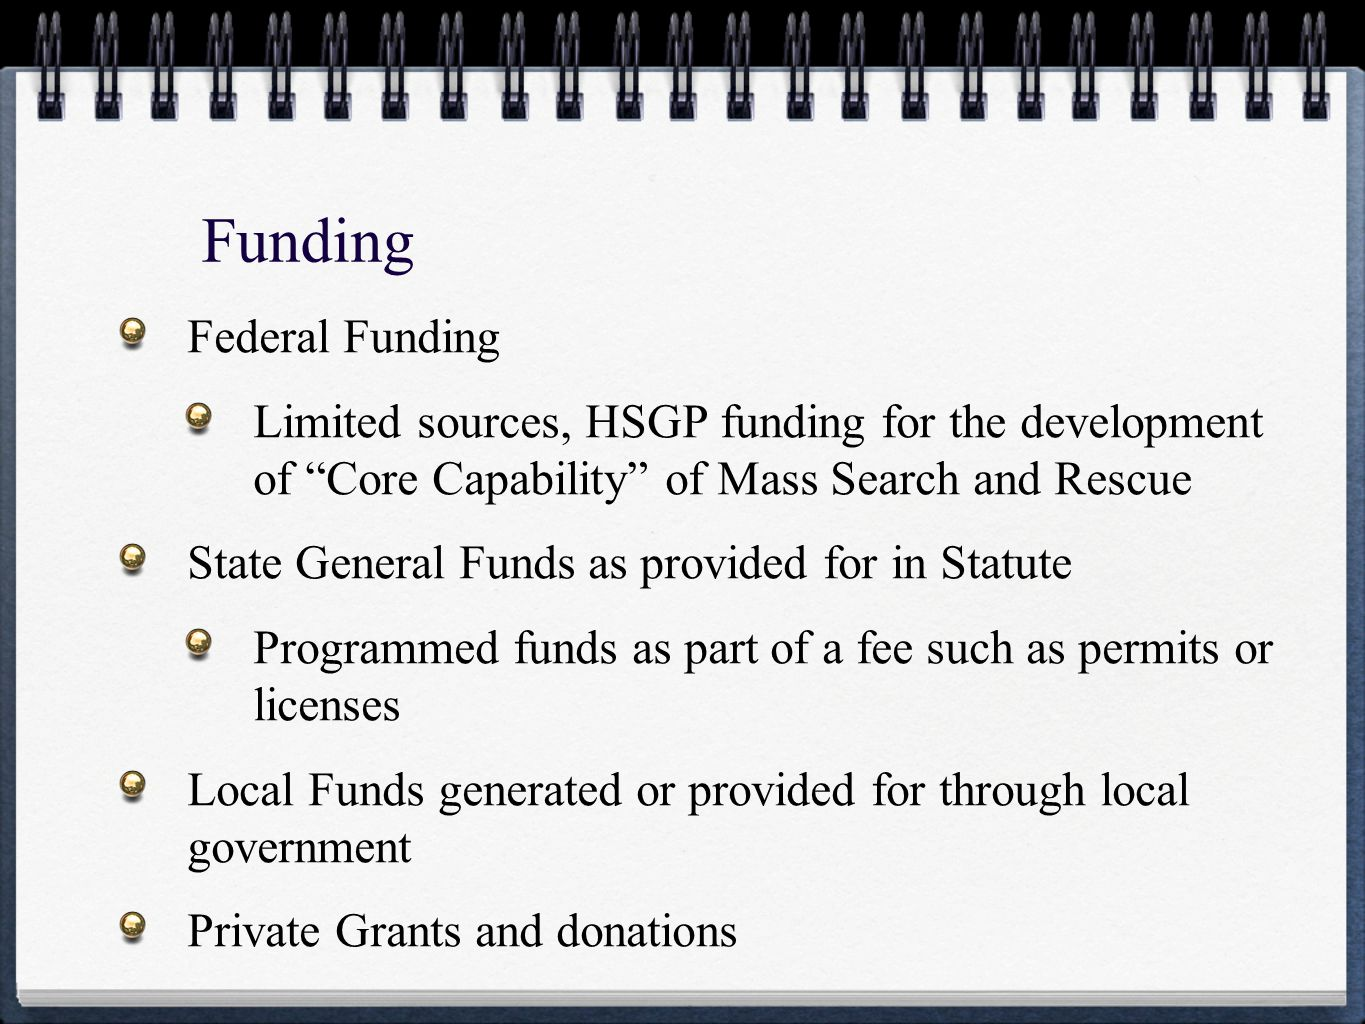 Funding Federal Funding Limited sources, HSGP funding for the development of Core Capability of Mass Search and Rescue State General Funds as provided for in Statute Programmed funds as part of a fee such as permits or licenses Local Funds generated or provided for through local government Private Grants and donations